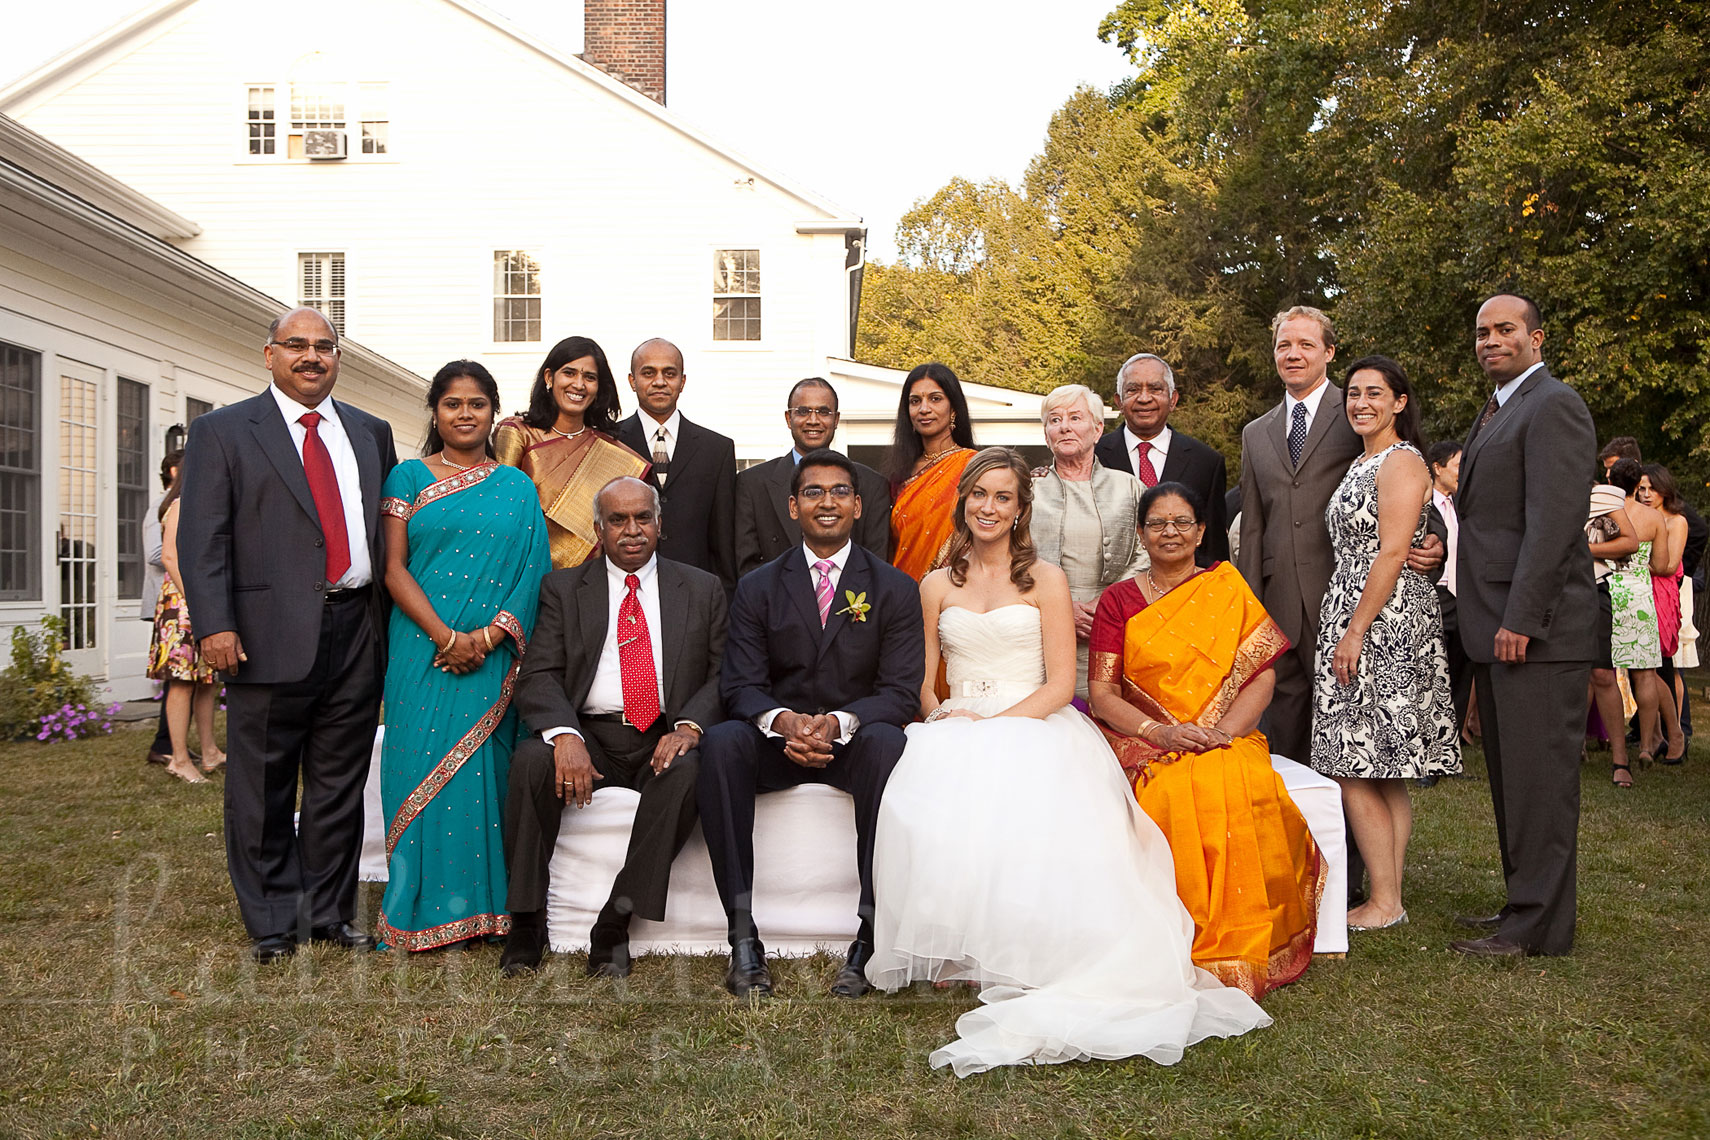 Kathi_Littwin_Photography_Mashomack_wedding_3068